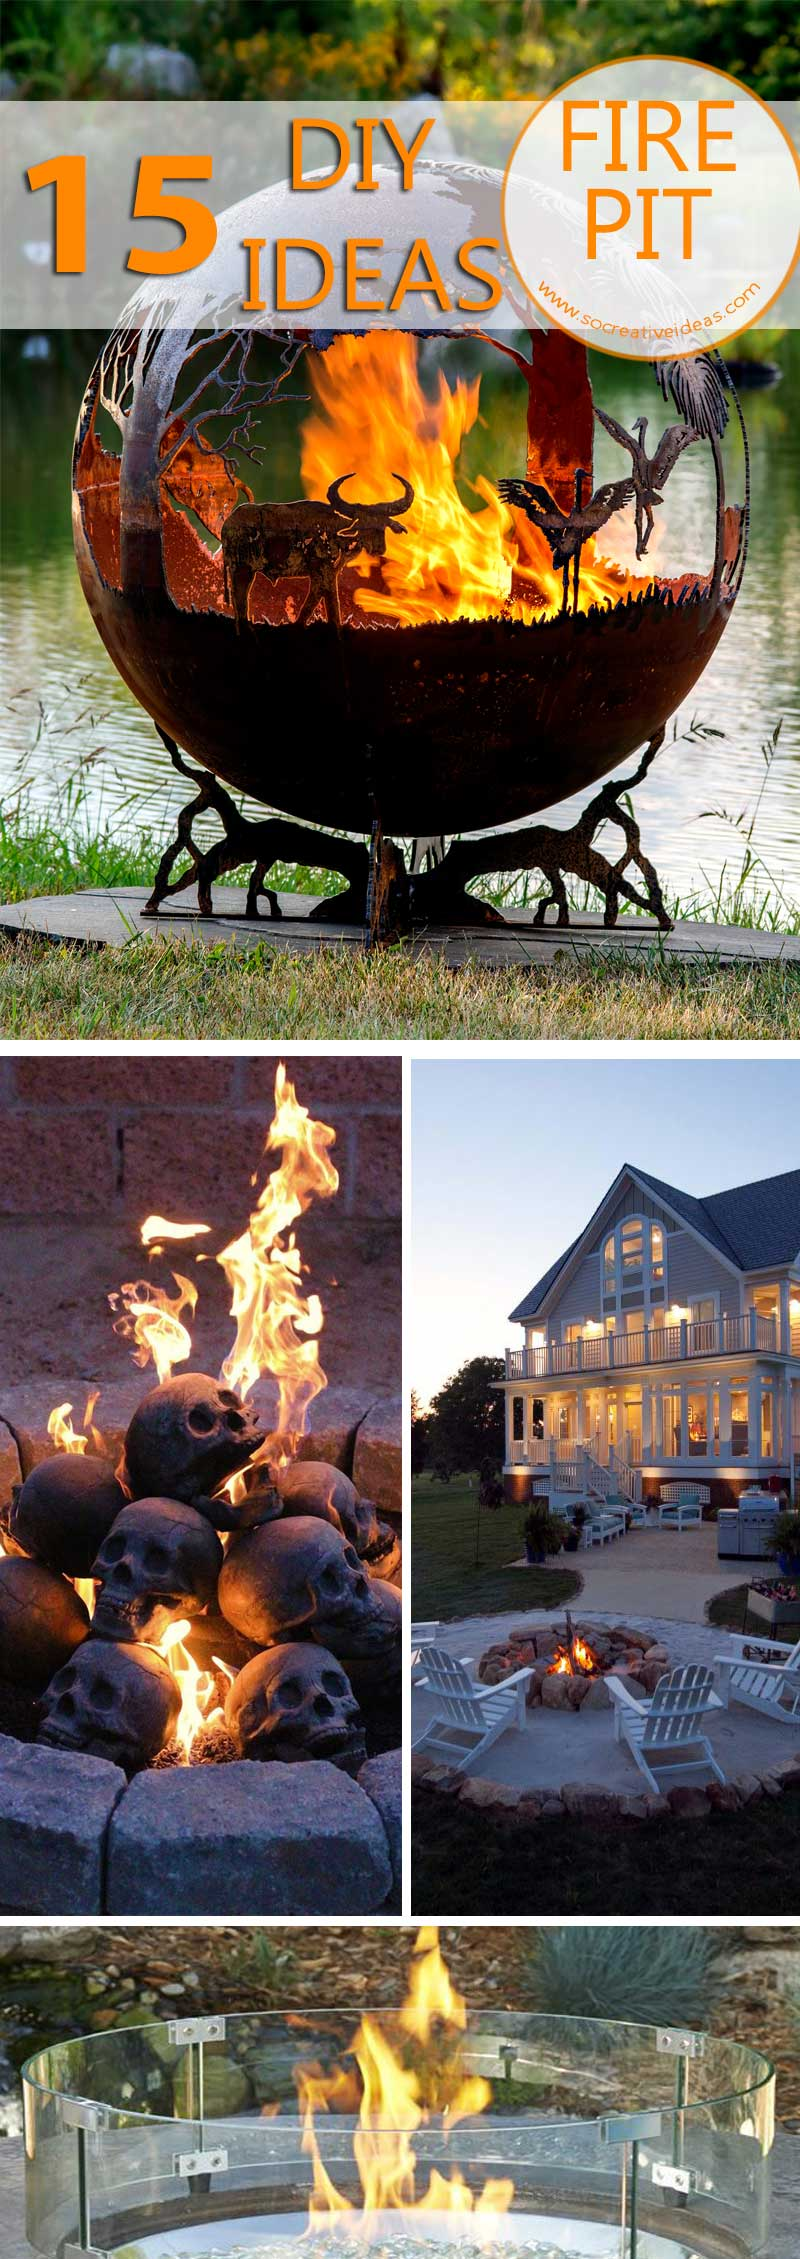 diy-firepit-ideas-for-backyard